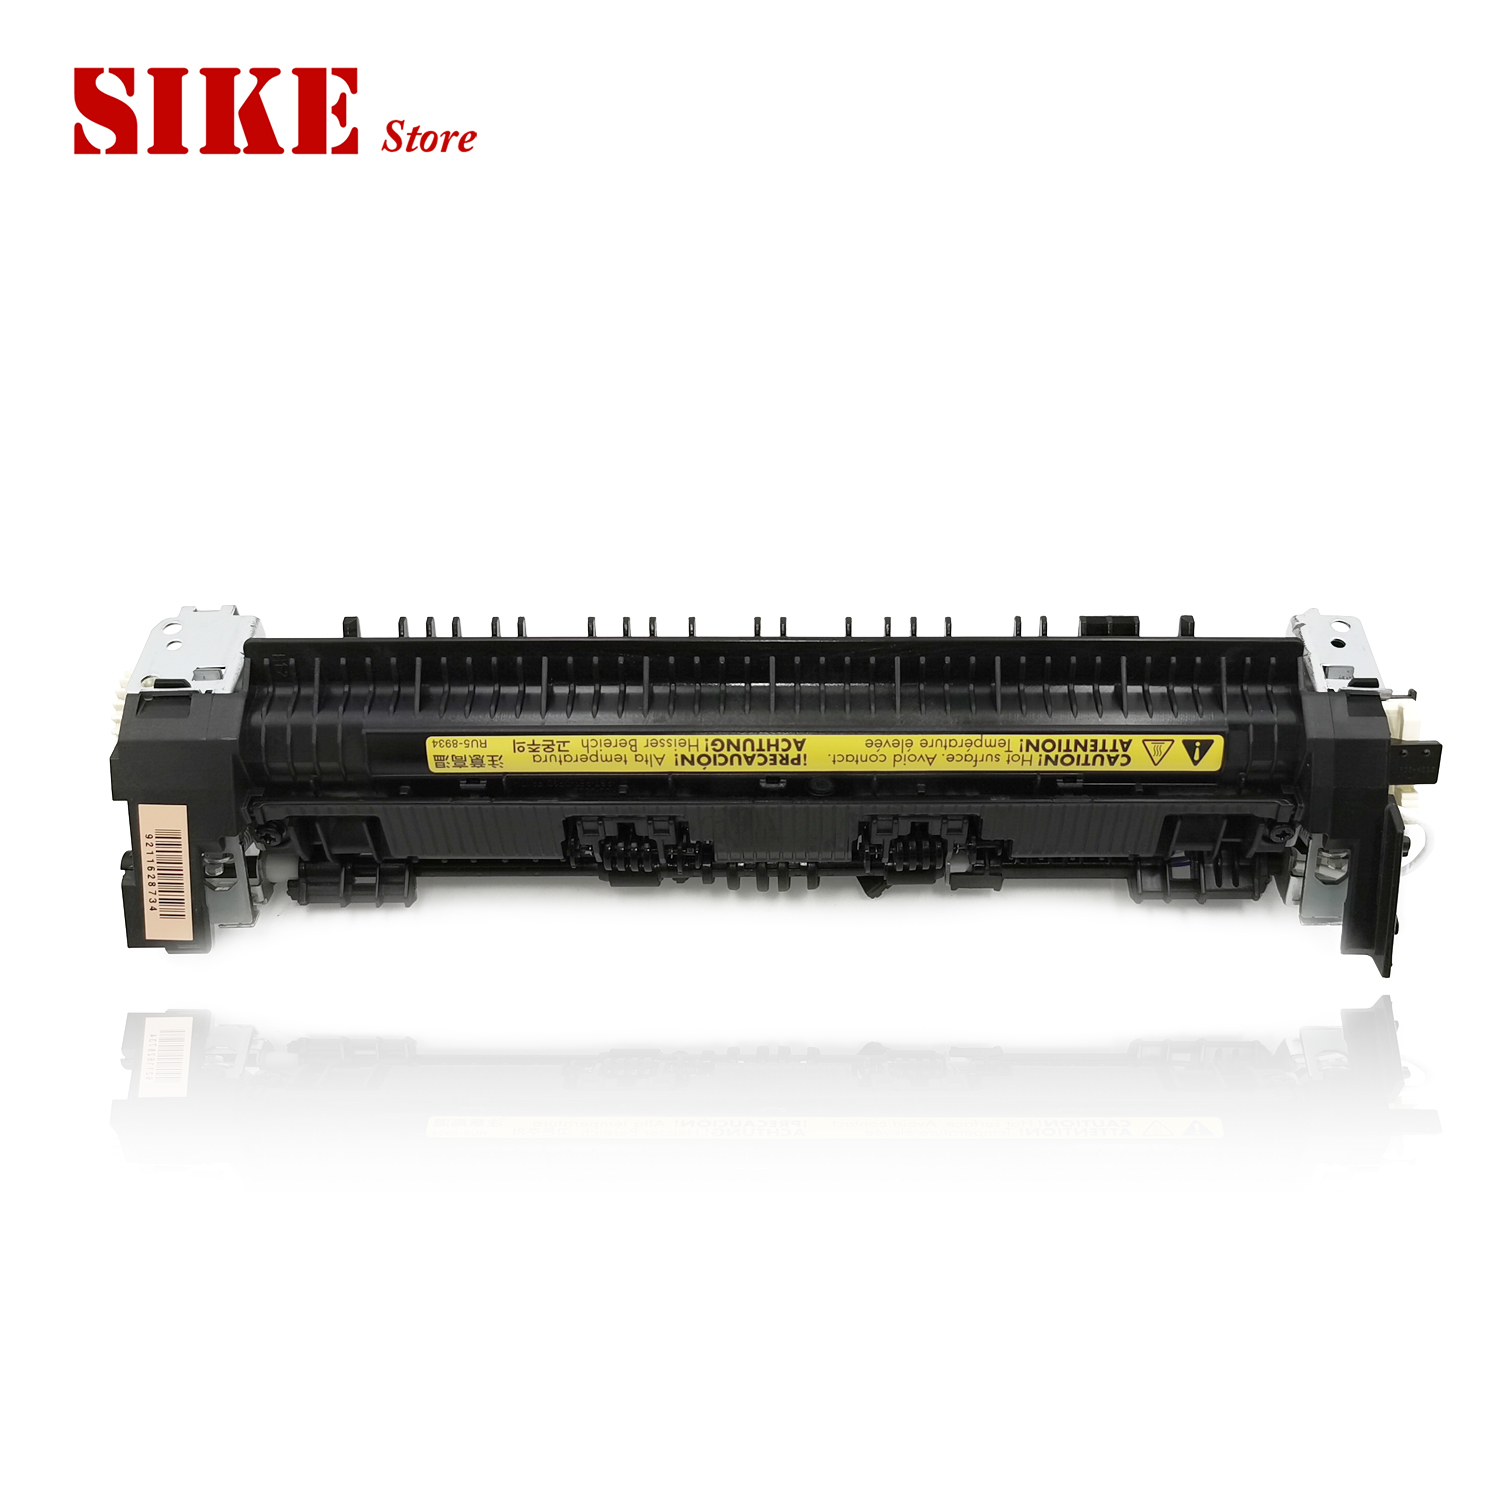 RM2-5133 RM2-5134 Fuser Assembly Unit For <font><b>HP</b></font> M127 M128 M127fn <font><b>M127fw</b></font> M128fn M128fp M128fw 127 128 Fusing Heating Fixing Assy image